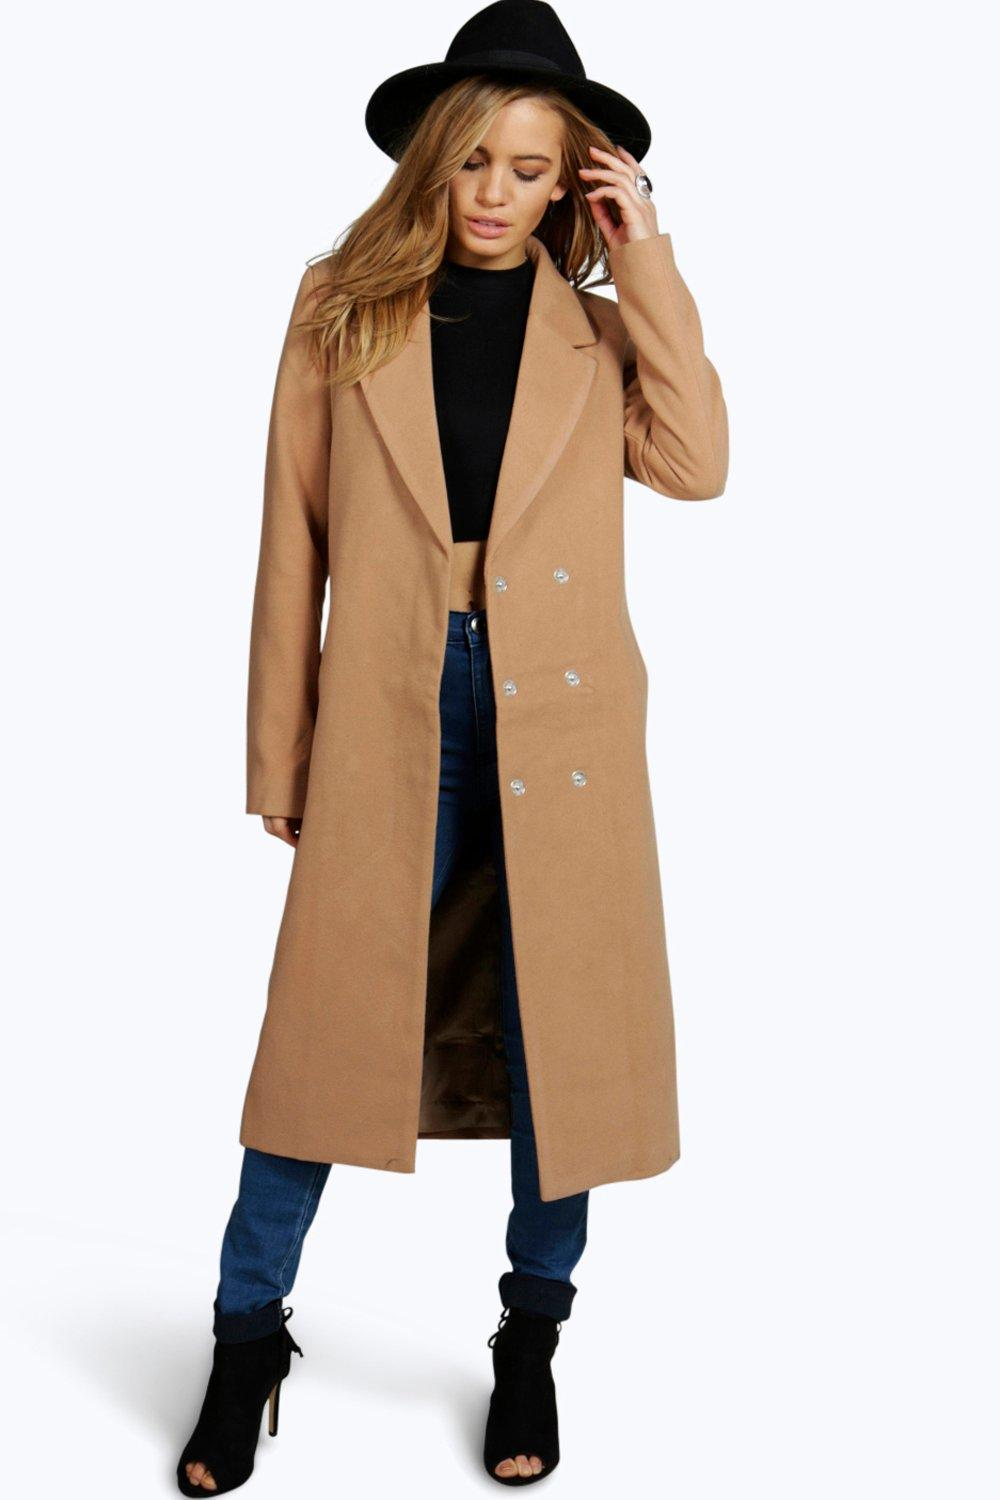 When the winter winds blow, check out the collection of Petite Outerwear at Macy's - featuring Petite Outerwear Coats, Petite Outerwear Jackets and more.